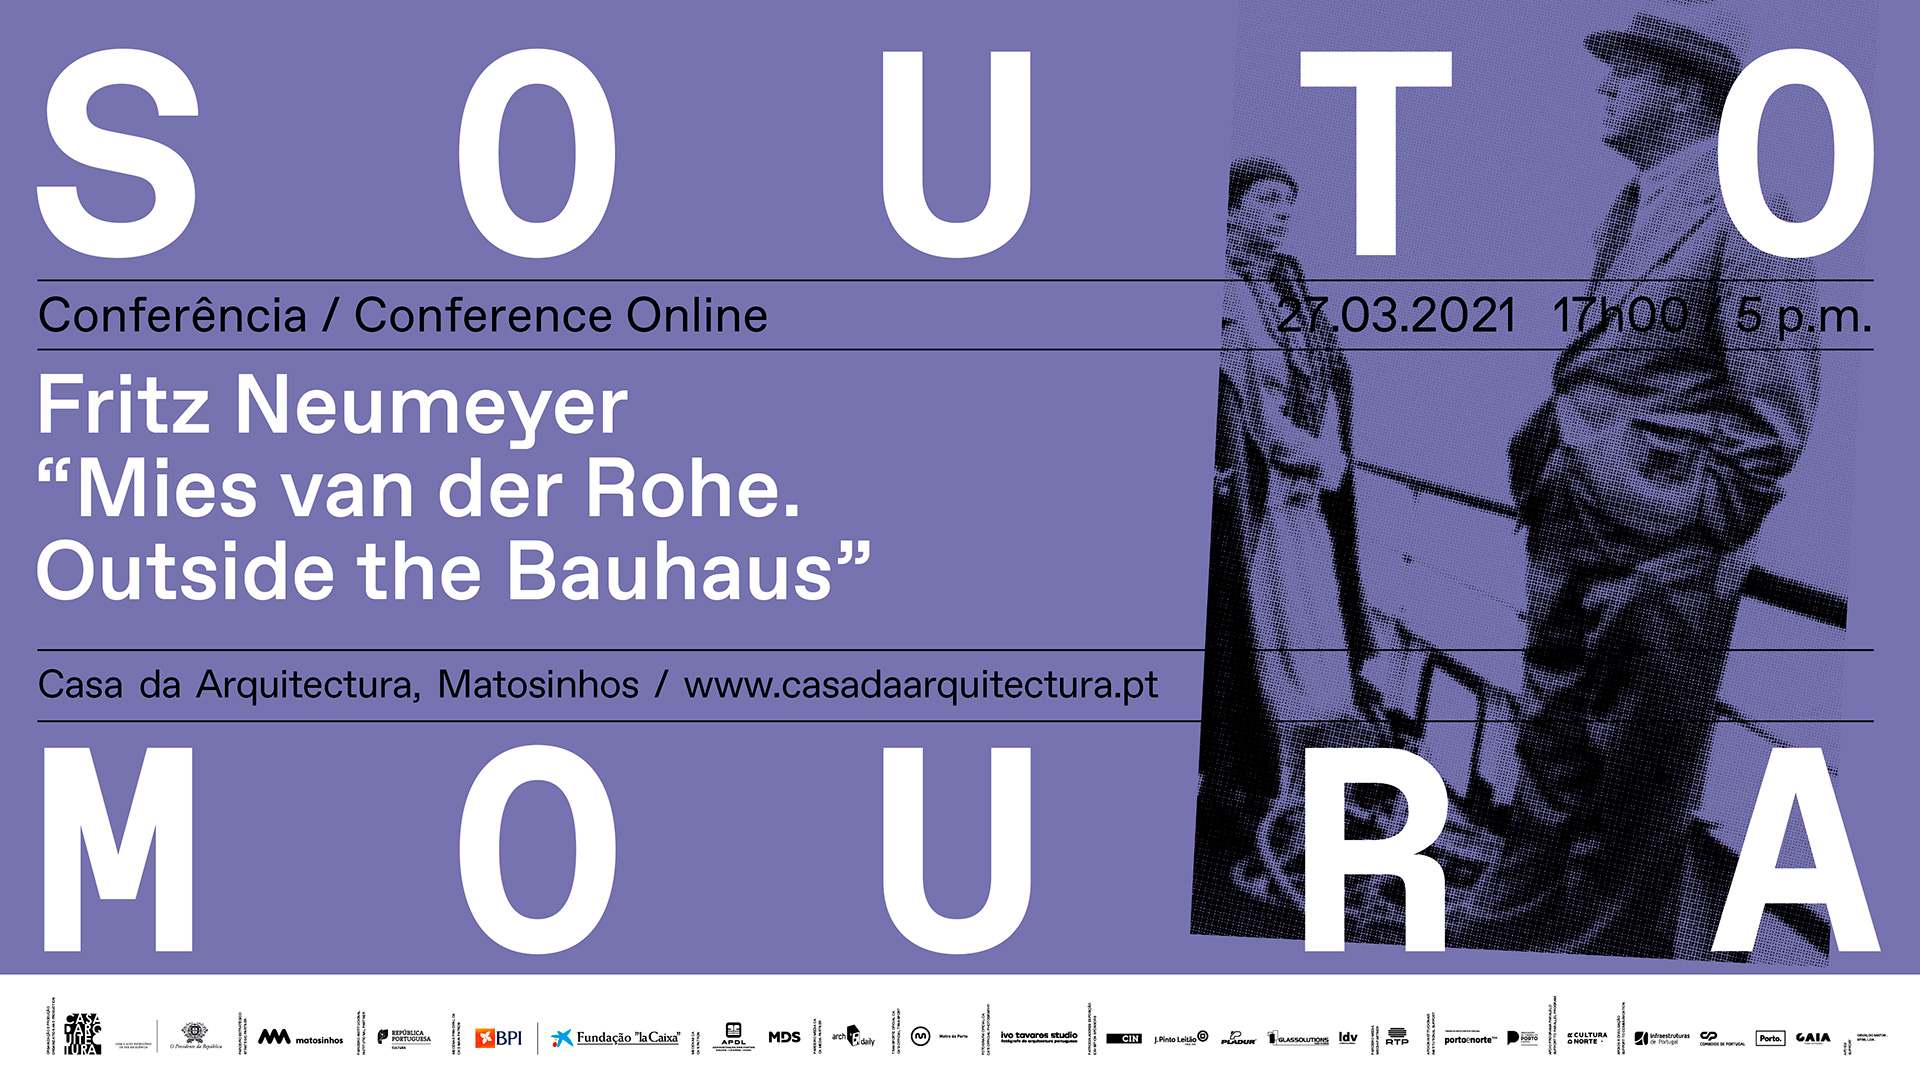 Conferência/Conference online Fritz Neumeyer 'Mies van der Rohe. Outside the Bauhaus'